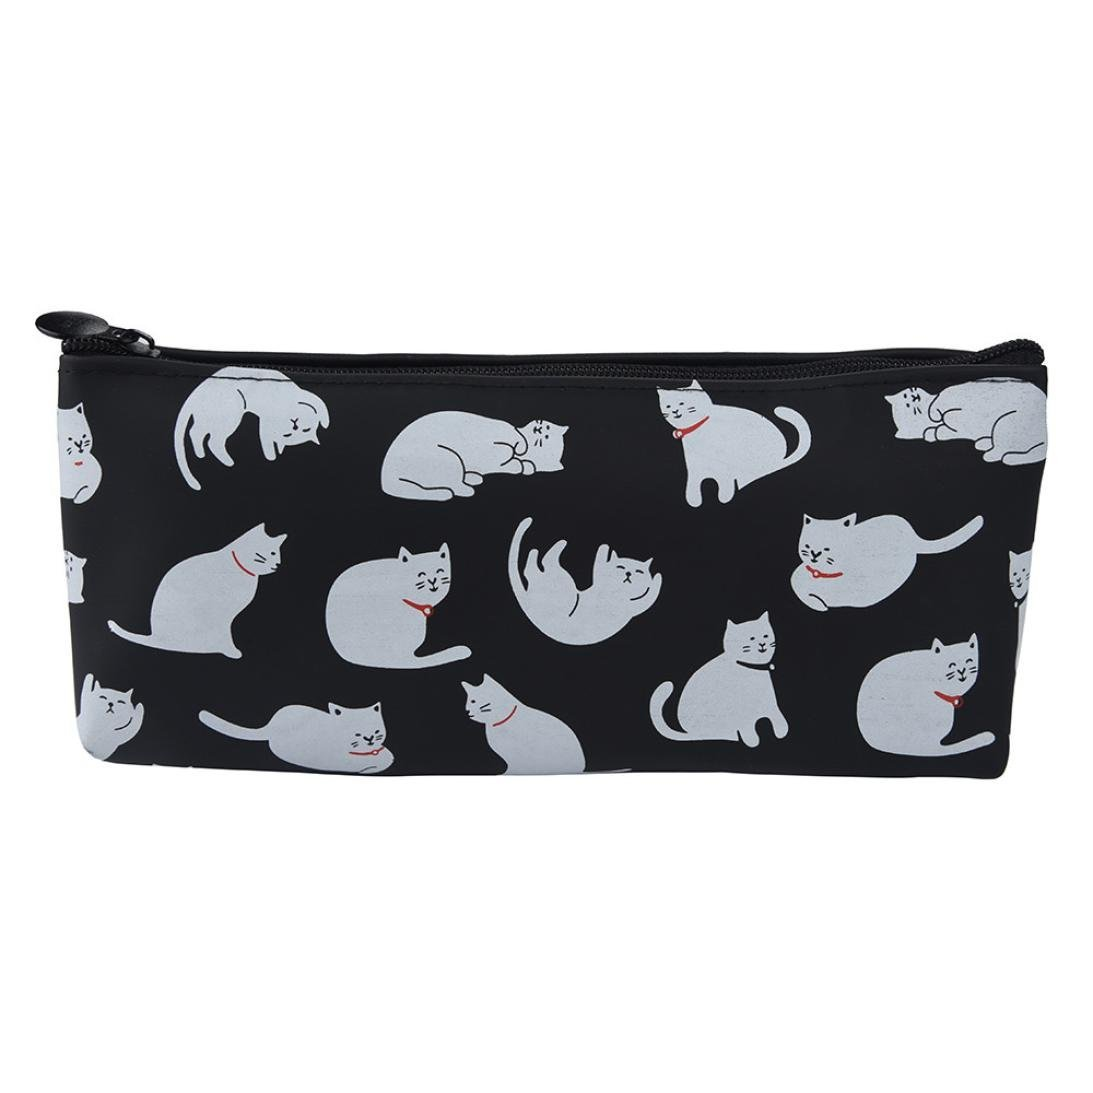 Tpingfe Cats Silicone Gift School Pen Case Cosmetic Makeup Storage Bag Purse (Black) by Tpingfe (Image #1)